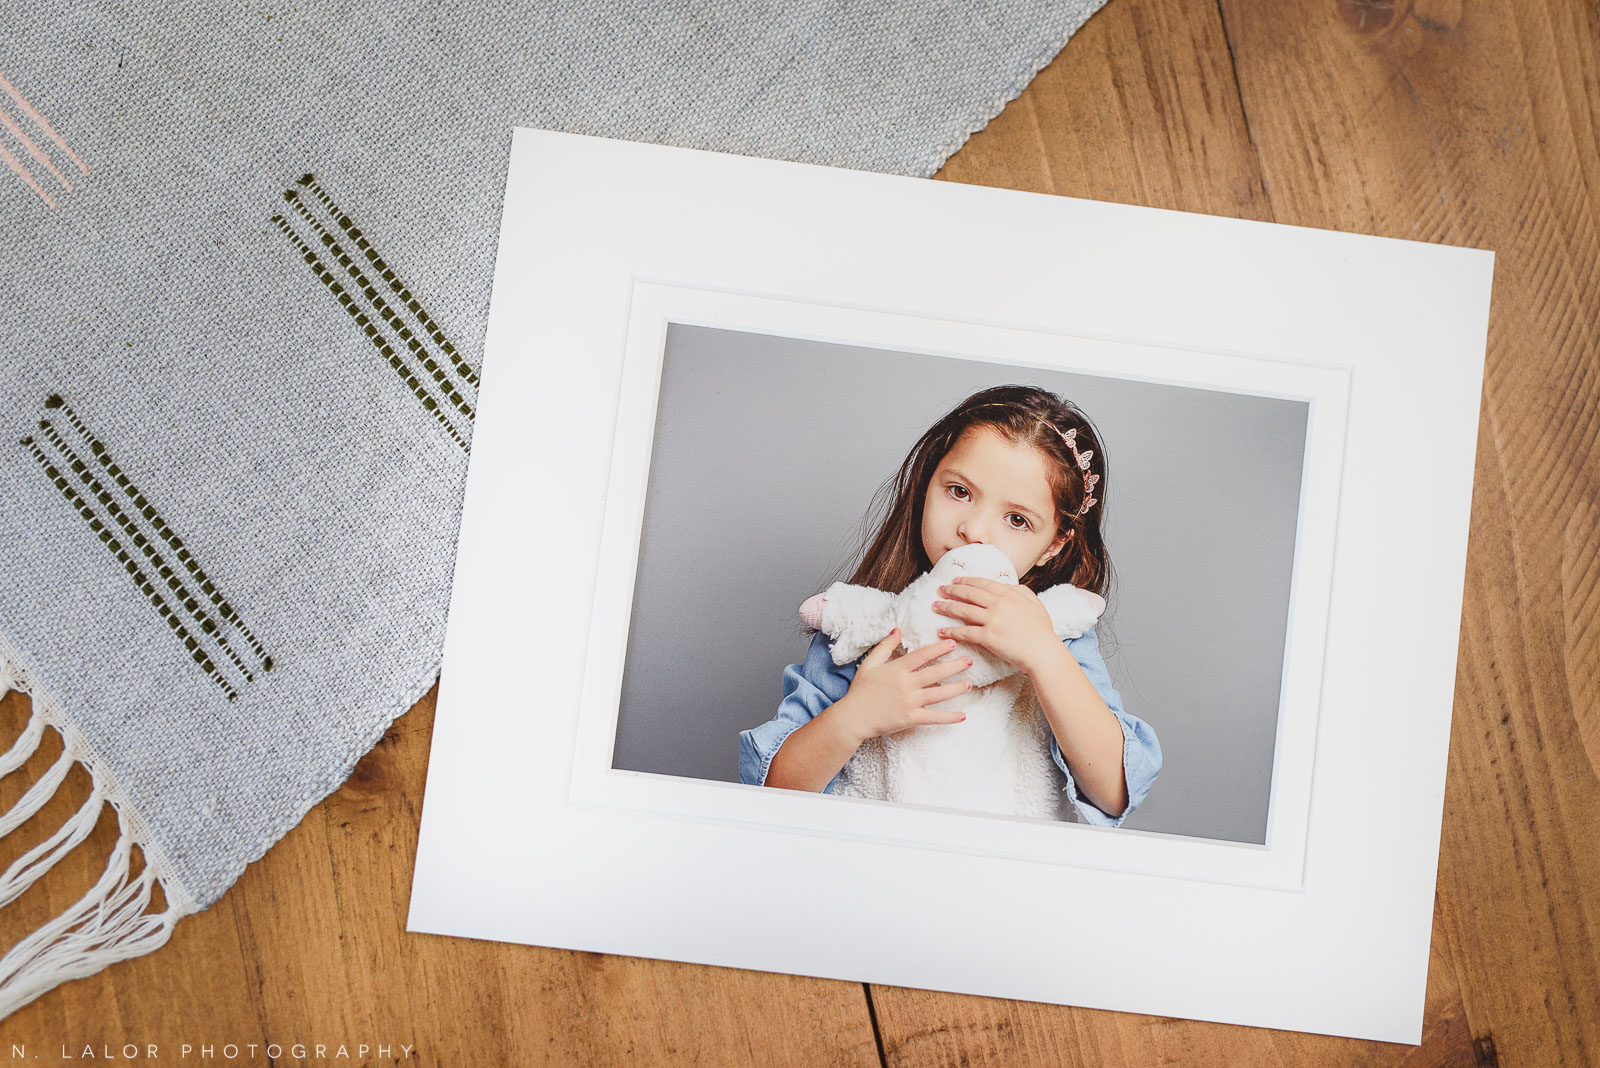 Matted print. N. Lalor Photography's luxury fine art photography products, based in Greenwich, Connecticut.